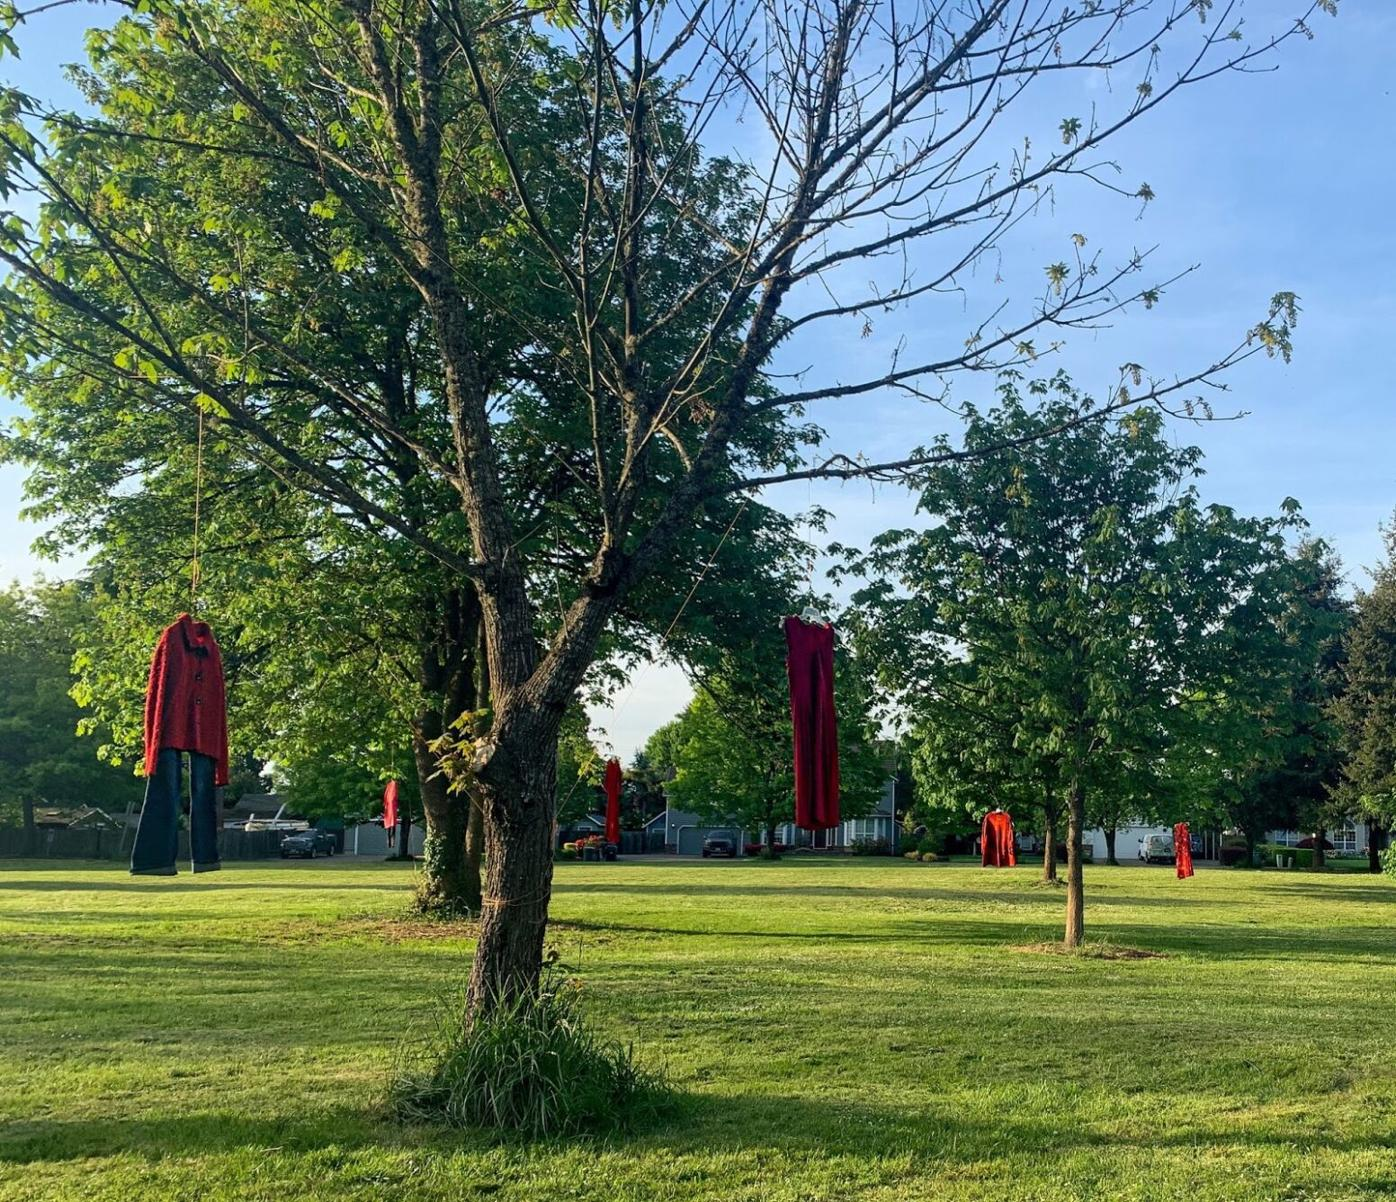 REDress poetry event honors missing and murdered Indigenous women